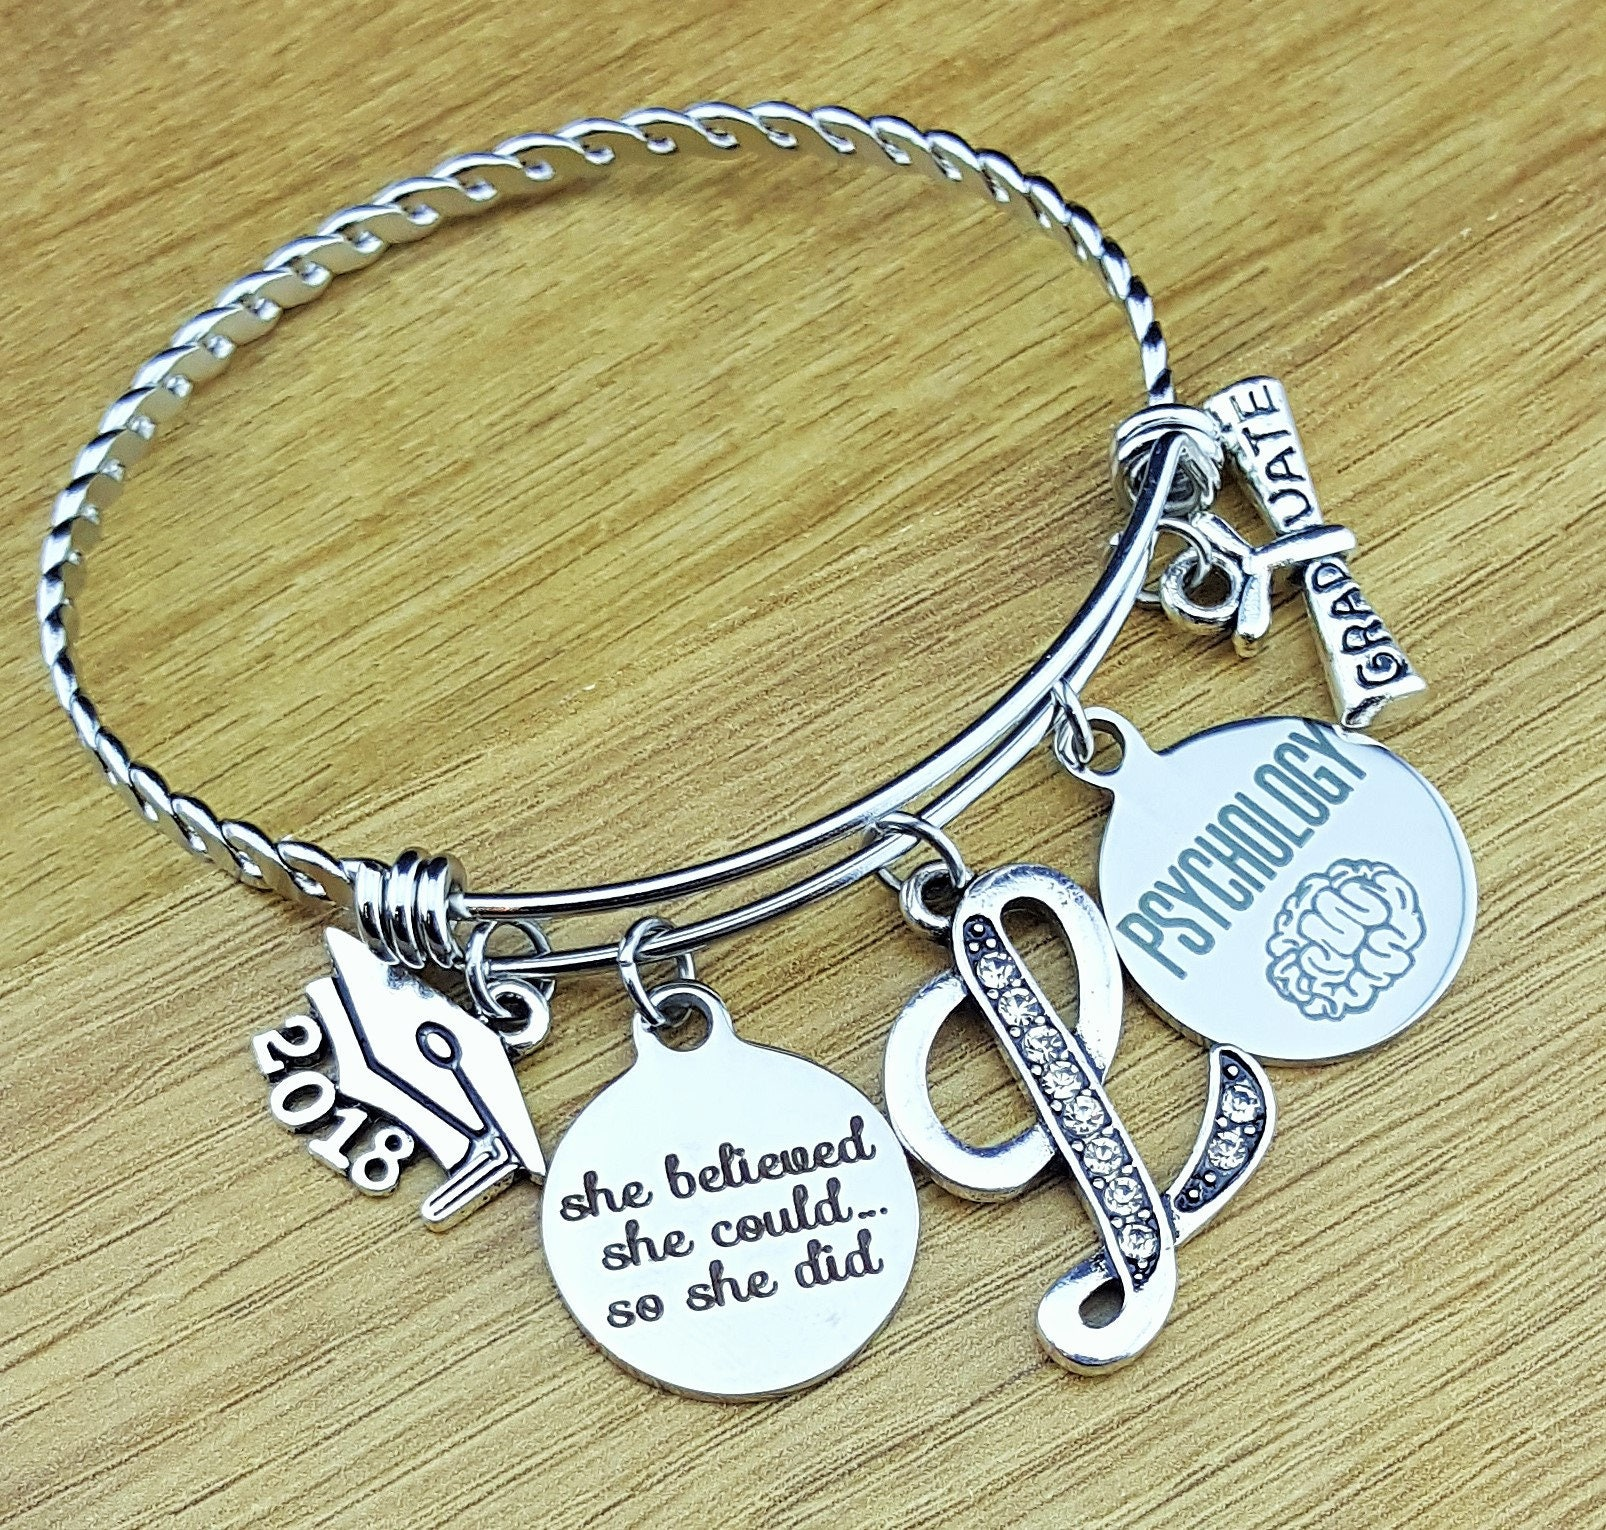 for il letter fullxfull charm graduation graduate pt jewelry grad p gift silver birthstone bangle physical therapist women her bracelet